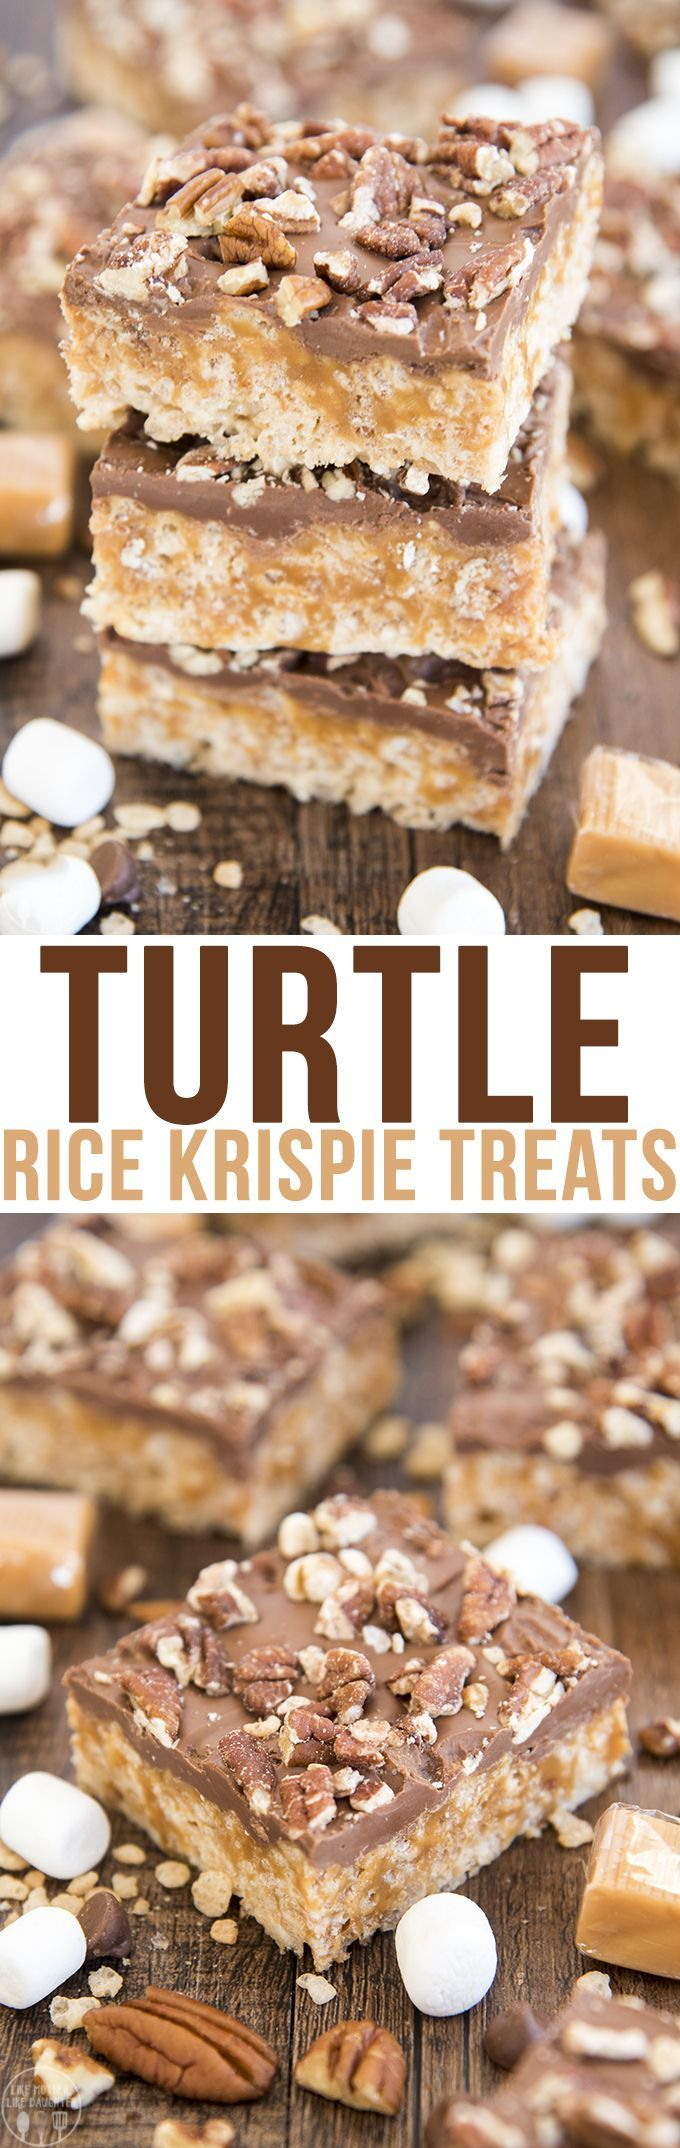 These turtle rice krispie treats have marshmallow rice krispie treats topped with a melty caramel layer, rich chocolate and crunchy salty pecans! They're an amazing sweet and salty treat.These bars are rich and perfect for sharing!